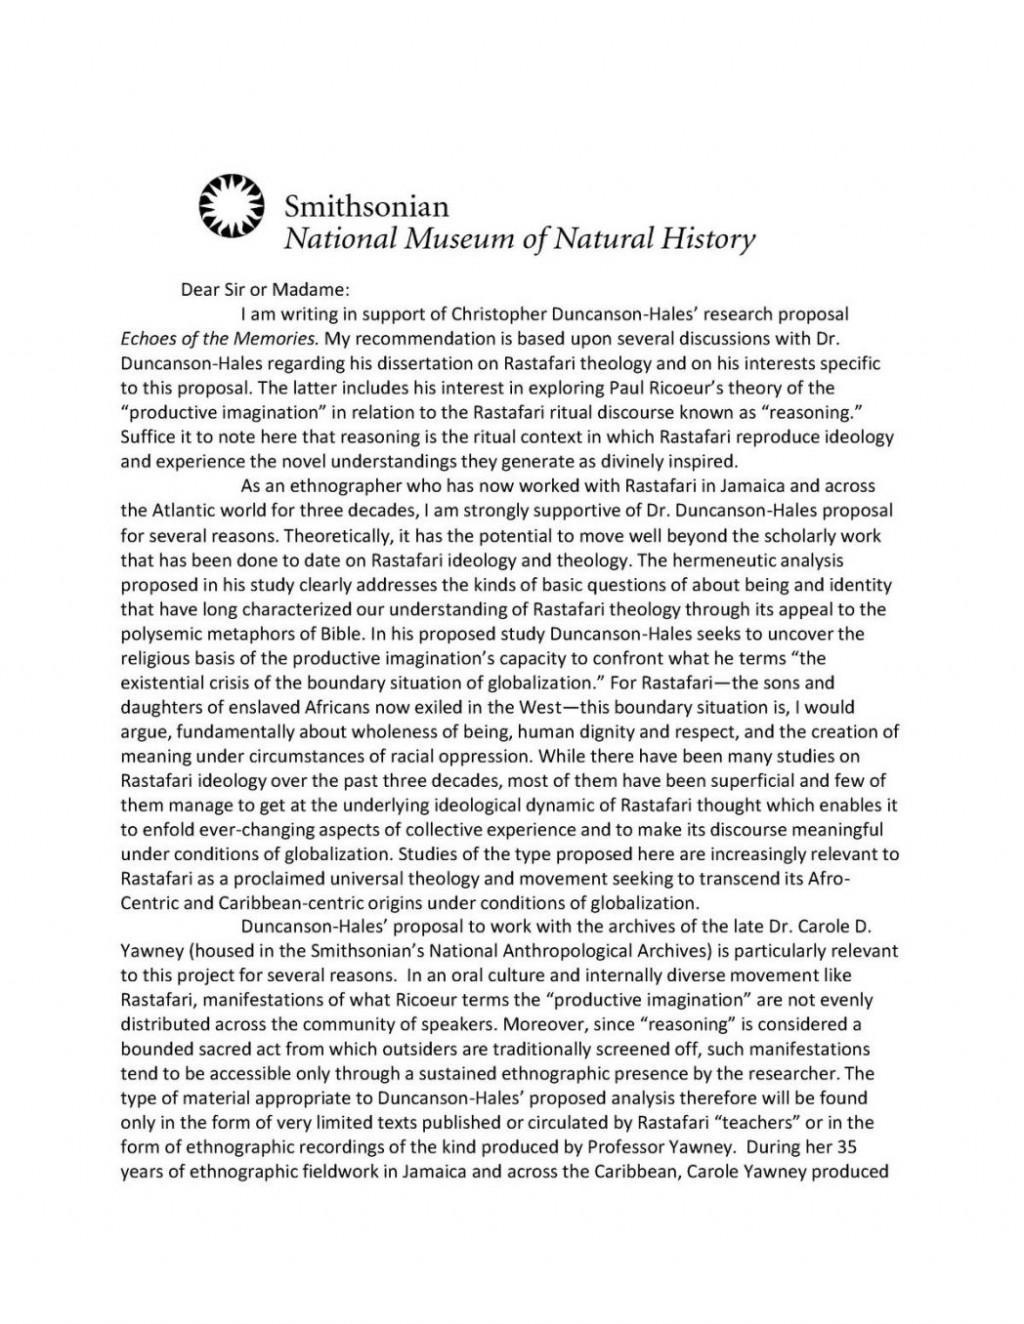 002 Ethnographic Essay Proposal Example Collect How To Write An Dr8 1048x1356 Unique Examples Micro Ethnography Large